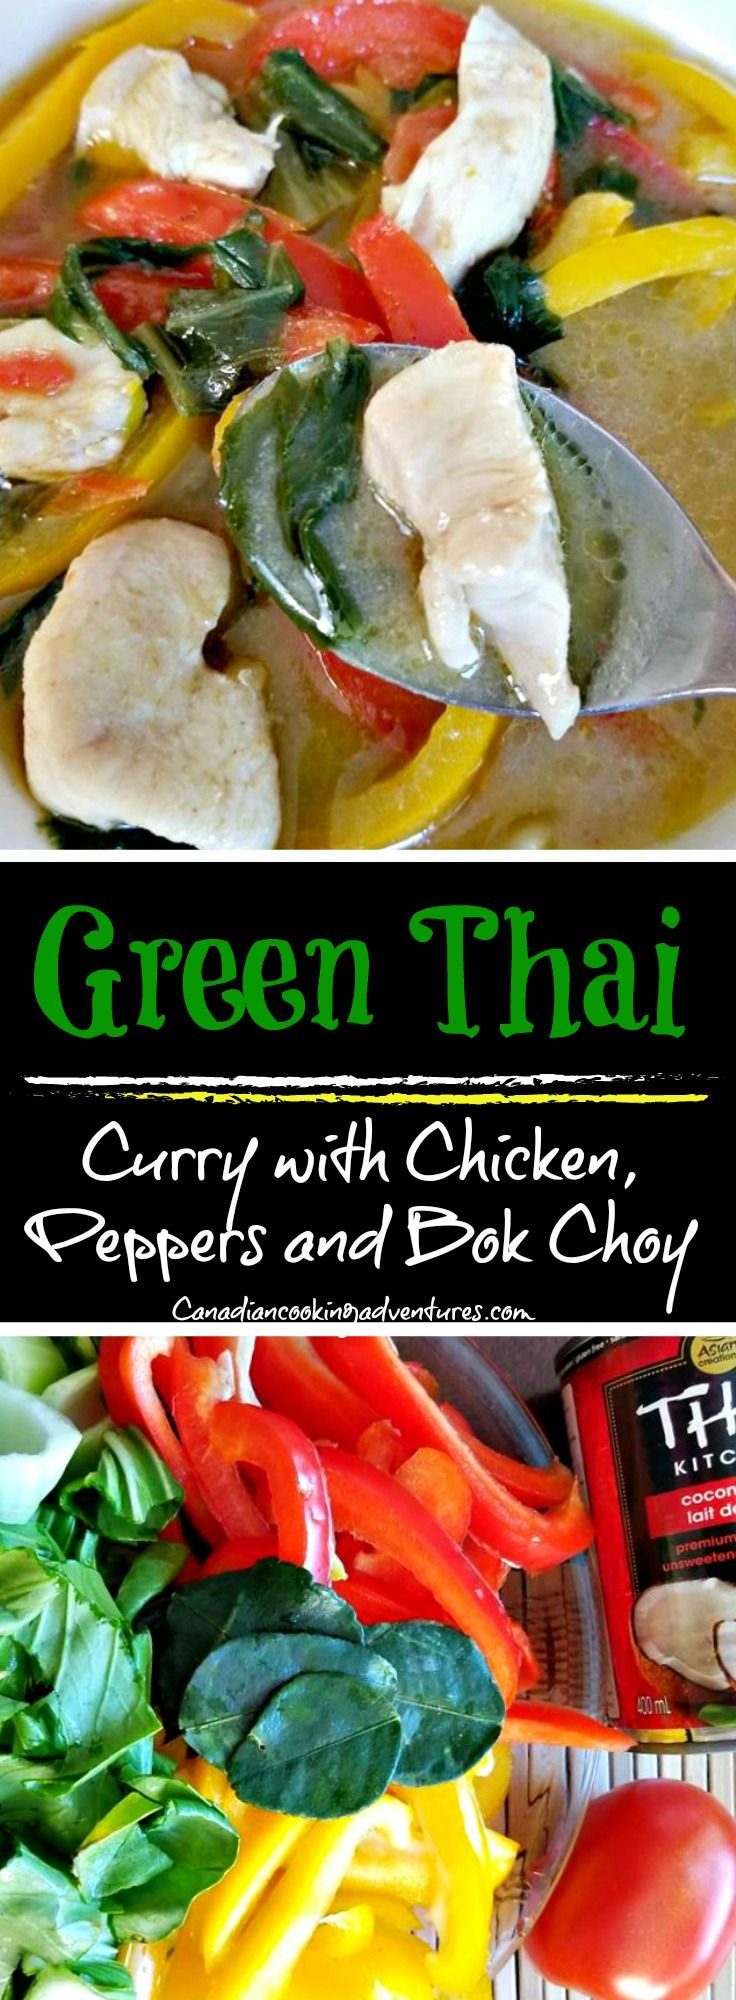 Green Thai Curry with Chicken, Peppers and Bok Choy